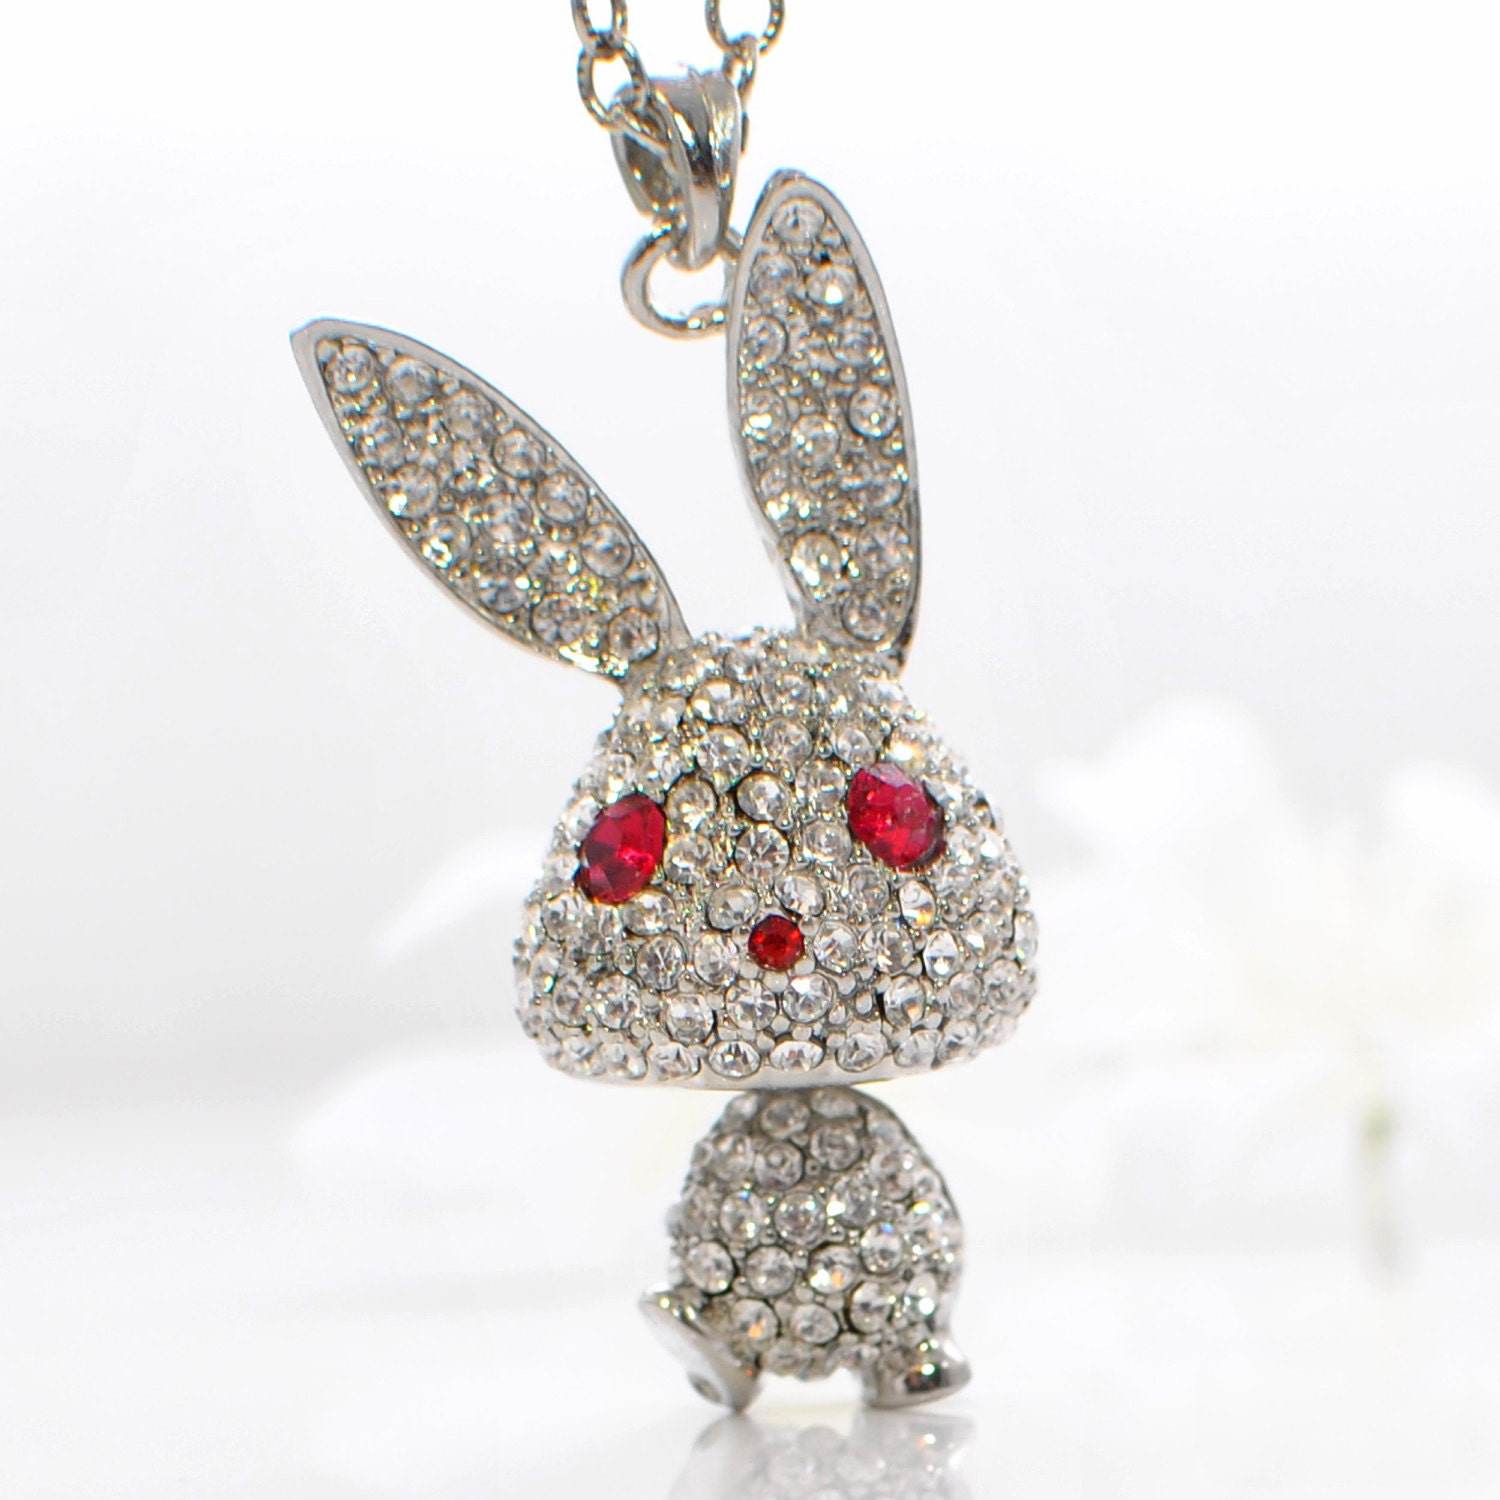 bunny earrings bunny jewelry rabbit pendant necklace puttin on 575